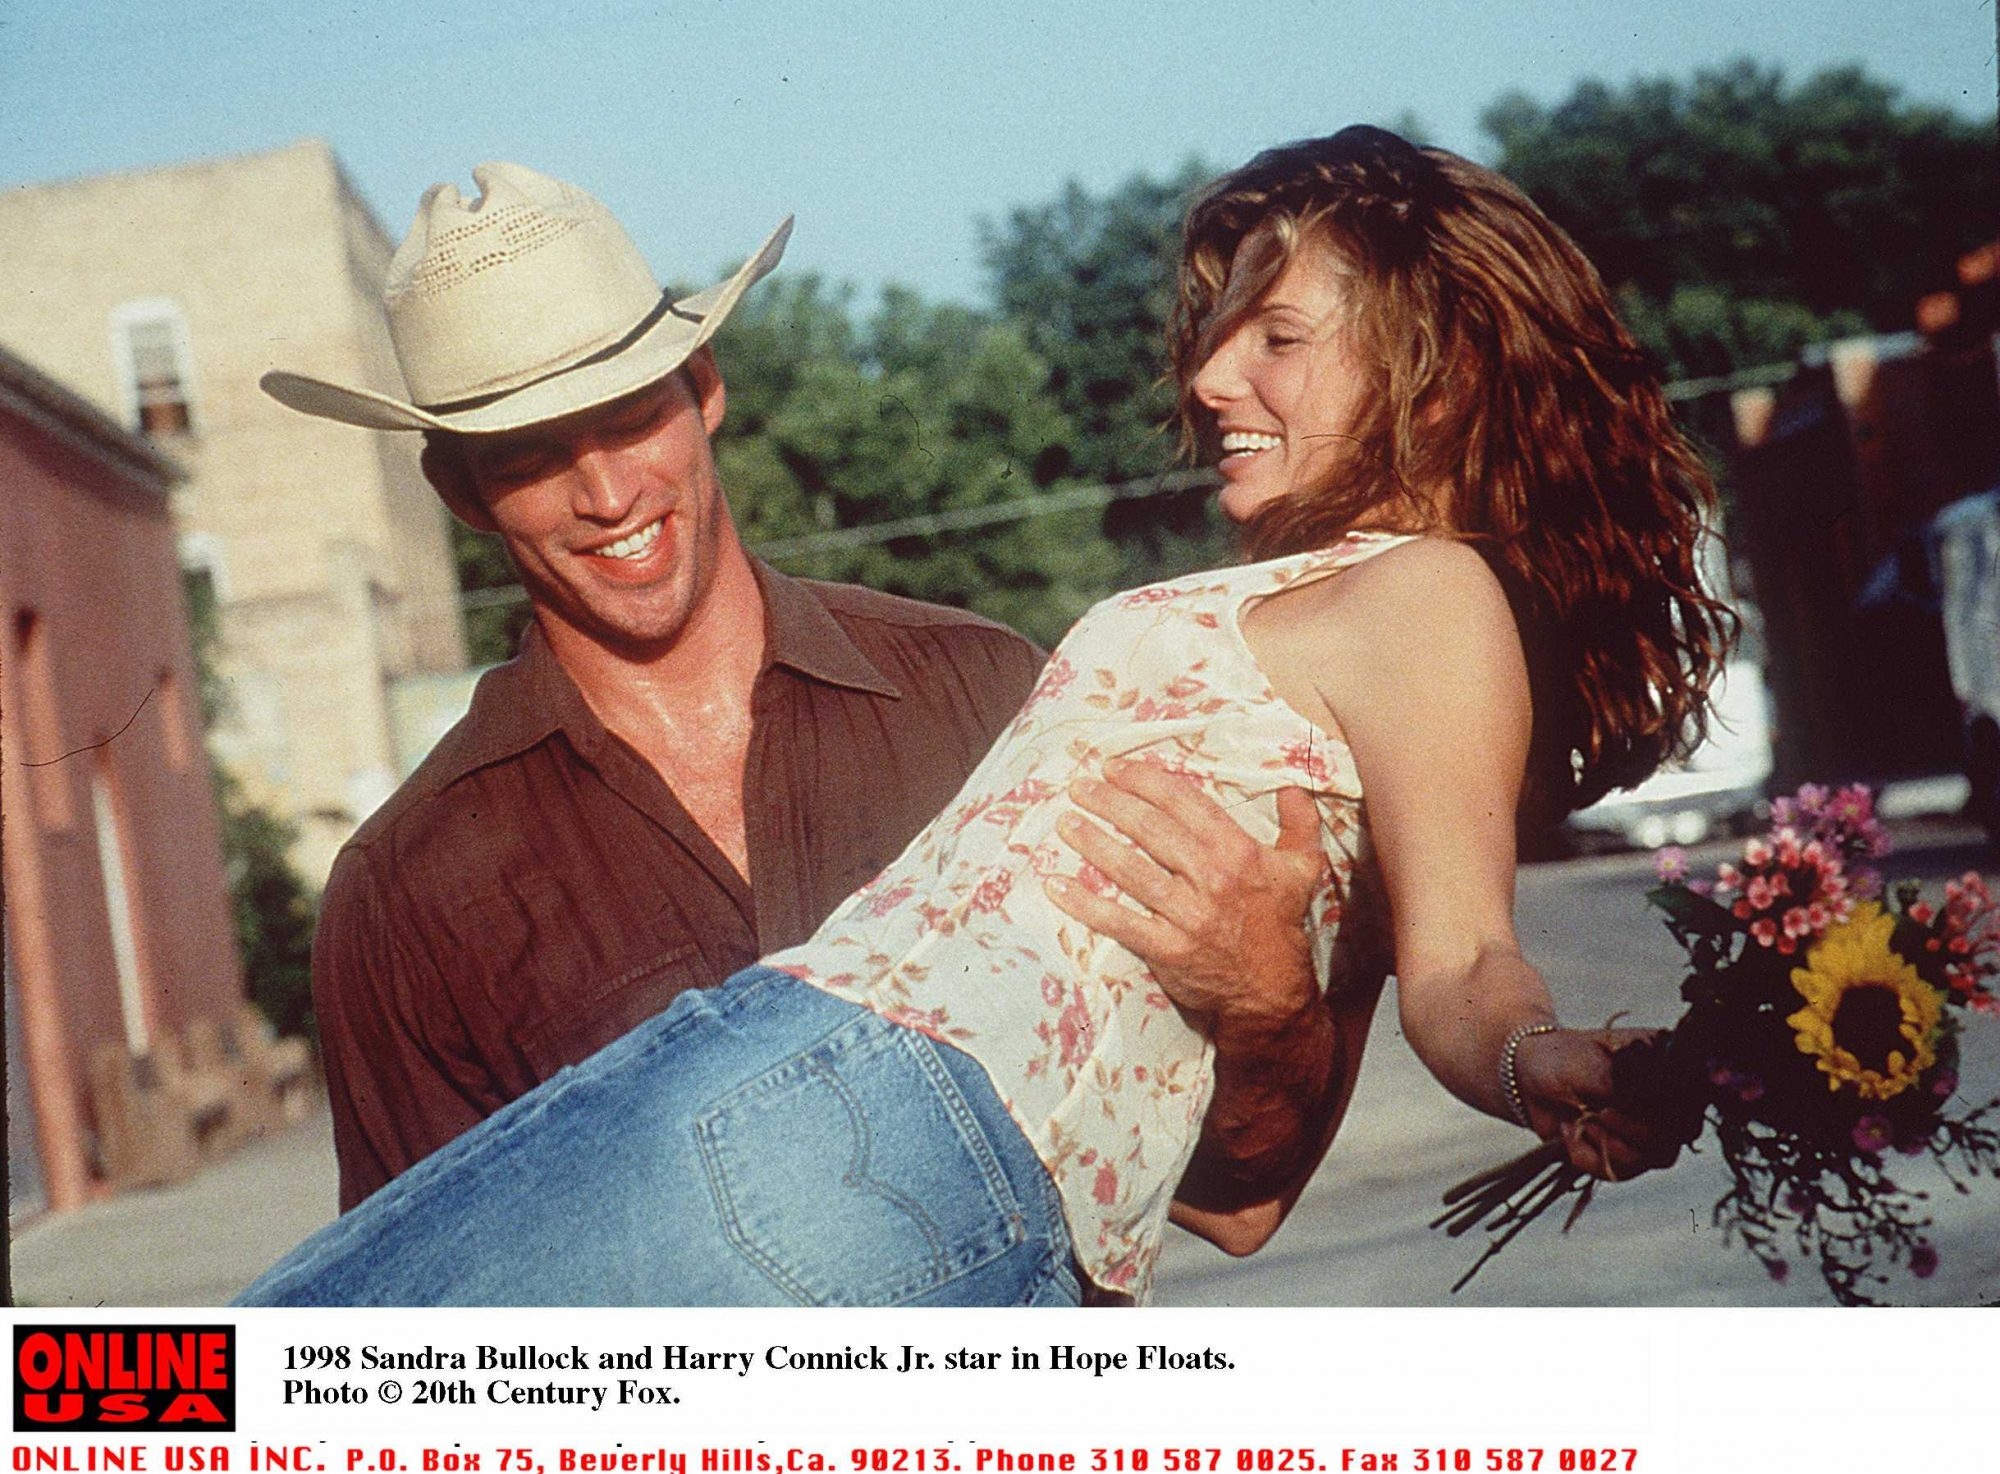 Sandra Bullock and Harry Connick JR. in Hope Floats